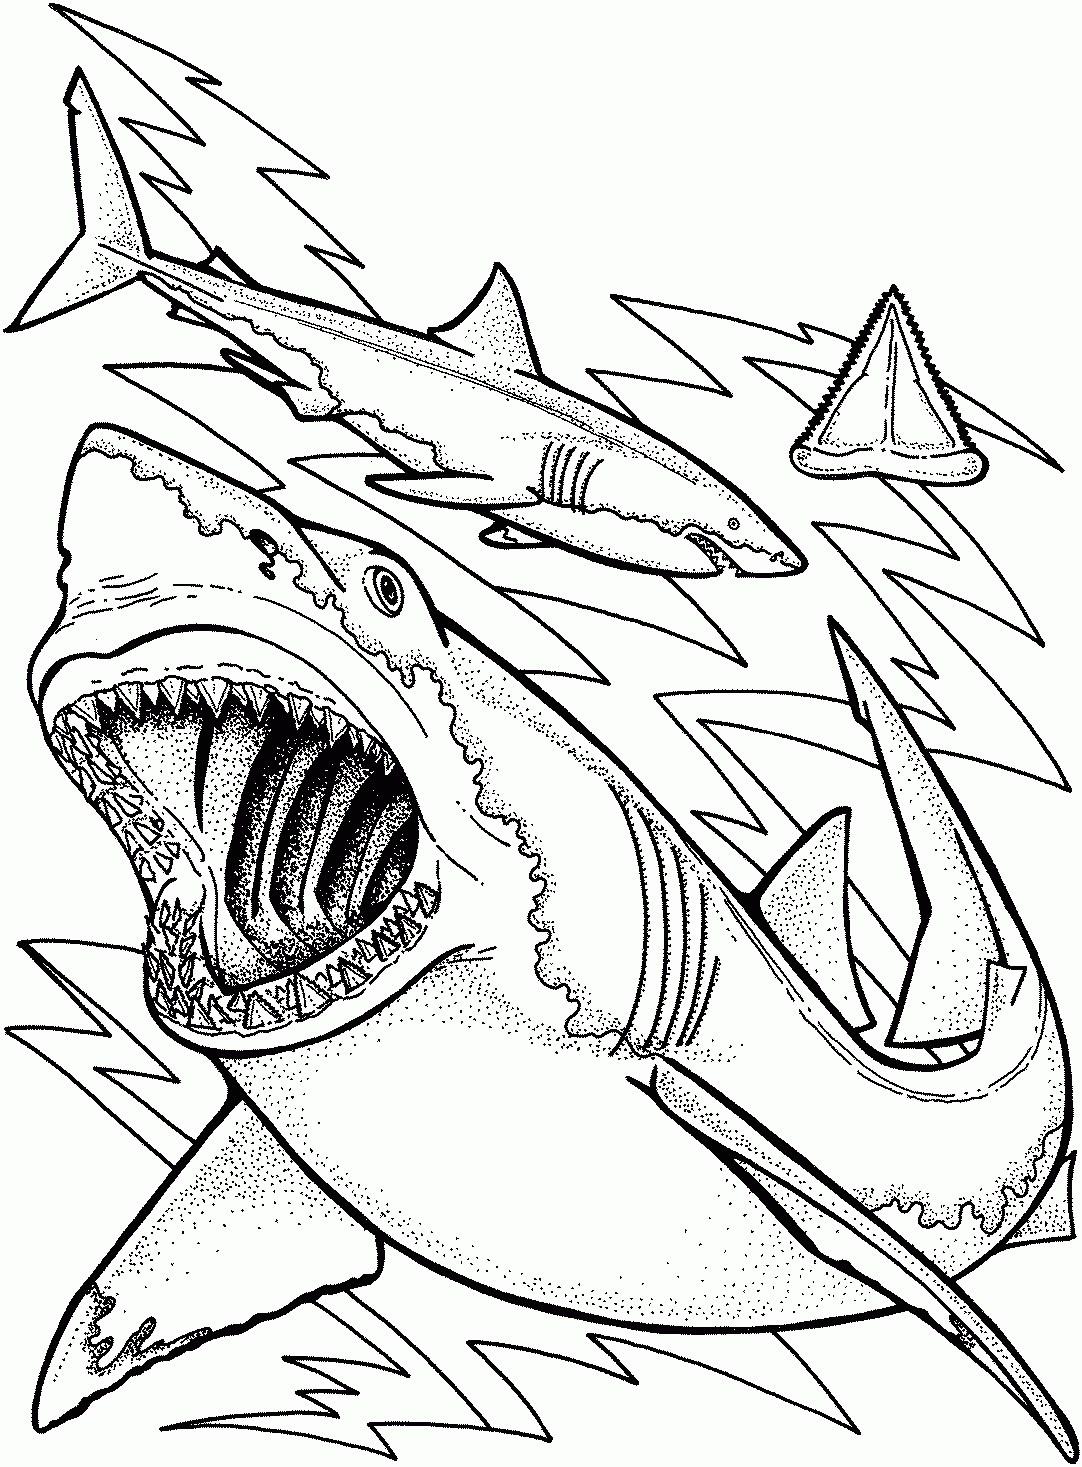 28 Hammerhead Shark Coloring Page Compilation | FREE COLORING PAGES ...